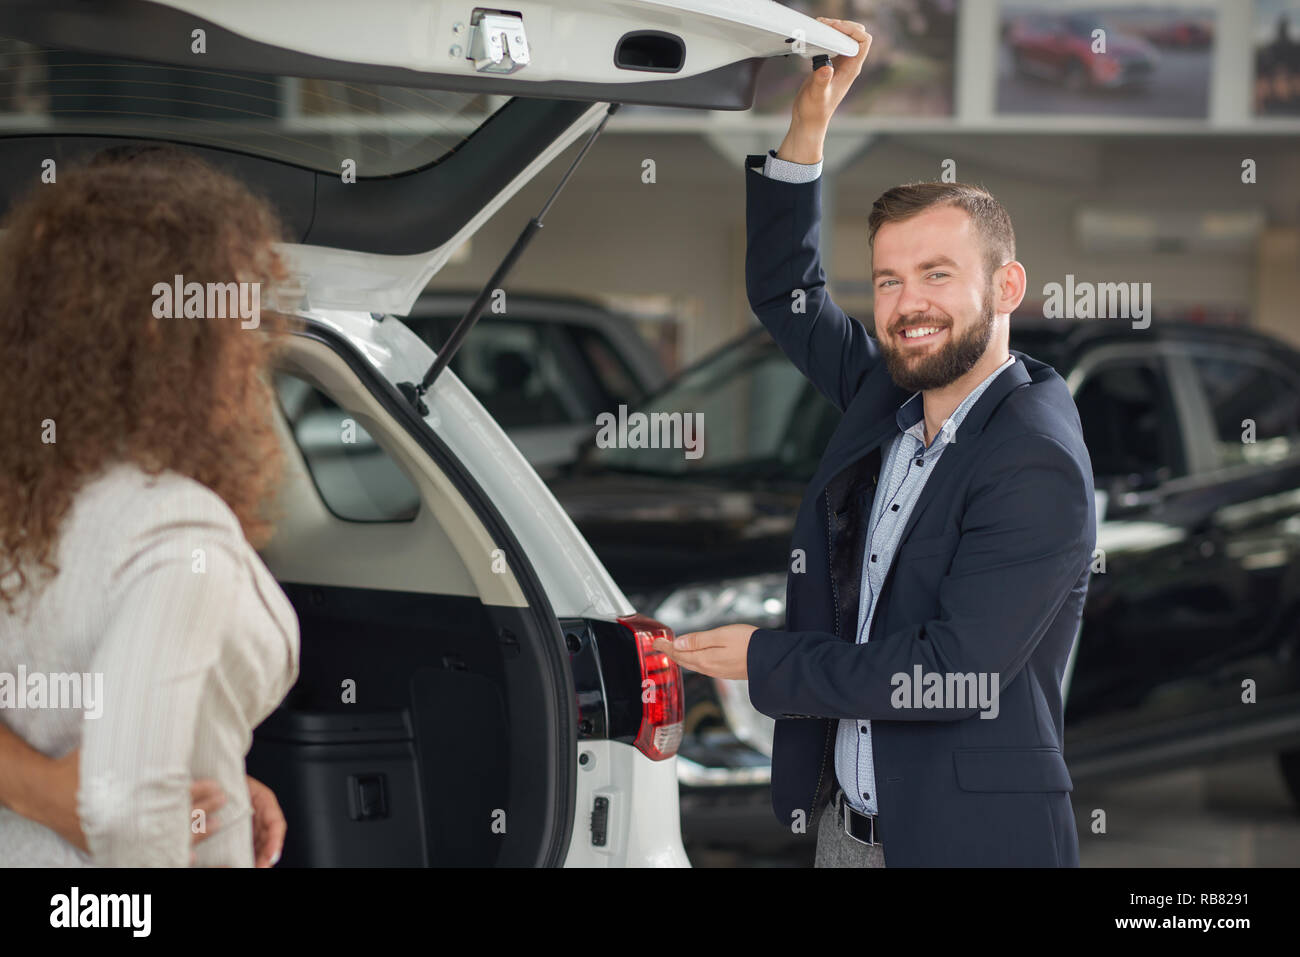 Car dealer showing luggage space to female client. Woman observing details of vehicle, checking quality. Handsome bearded manager smiling, looking at camera, holding hand on auto. - Stock Image